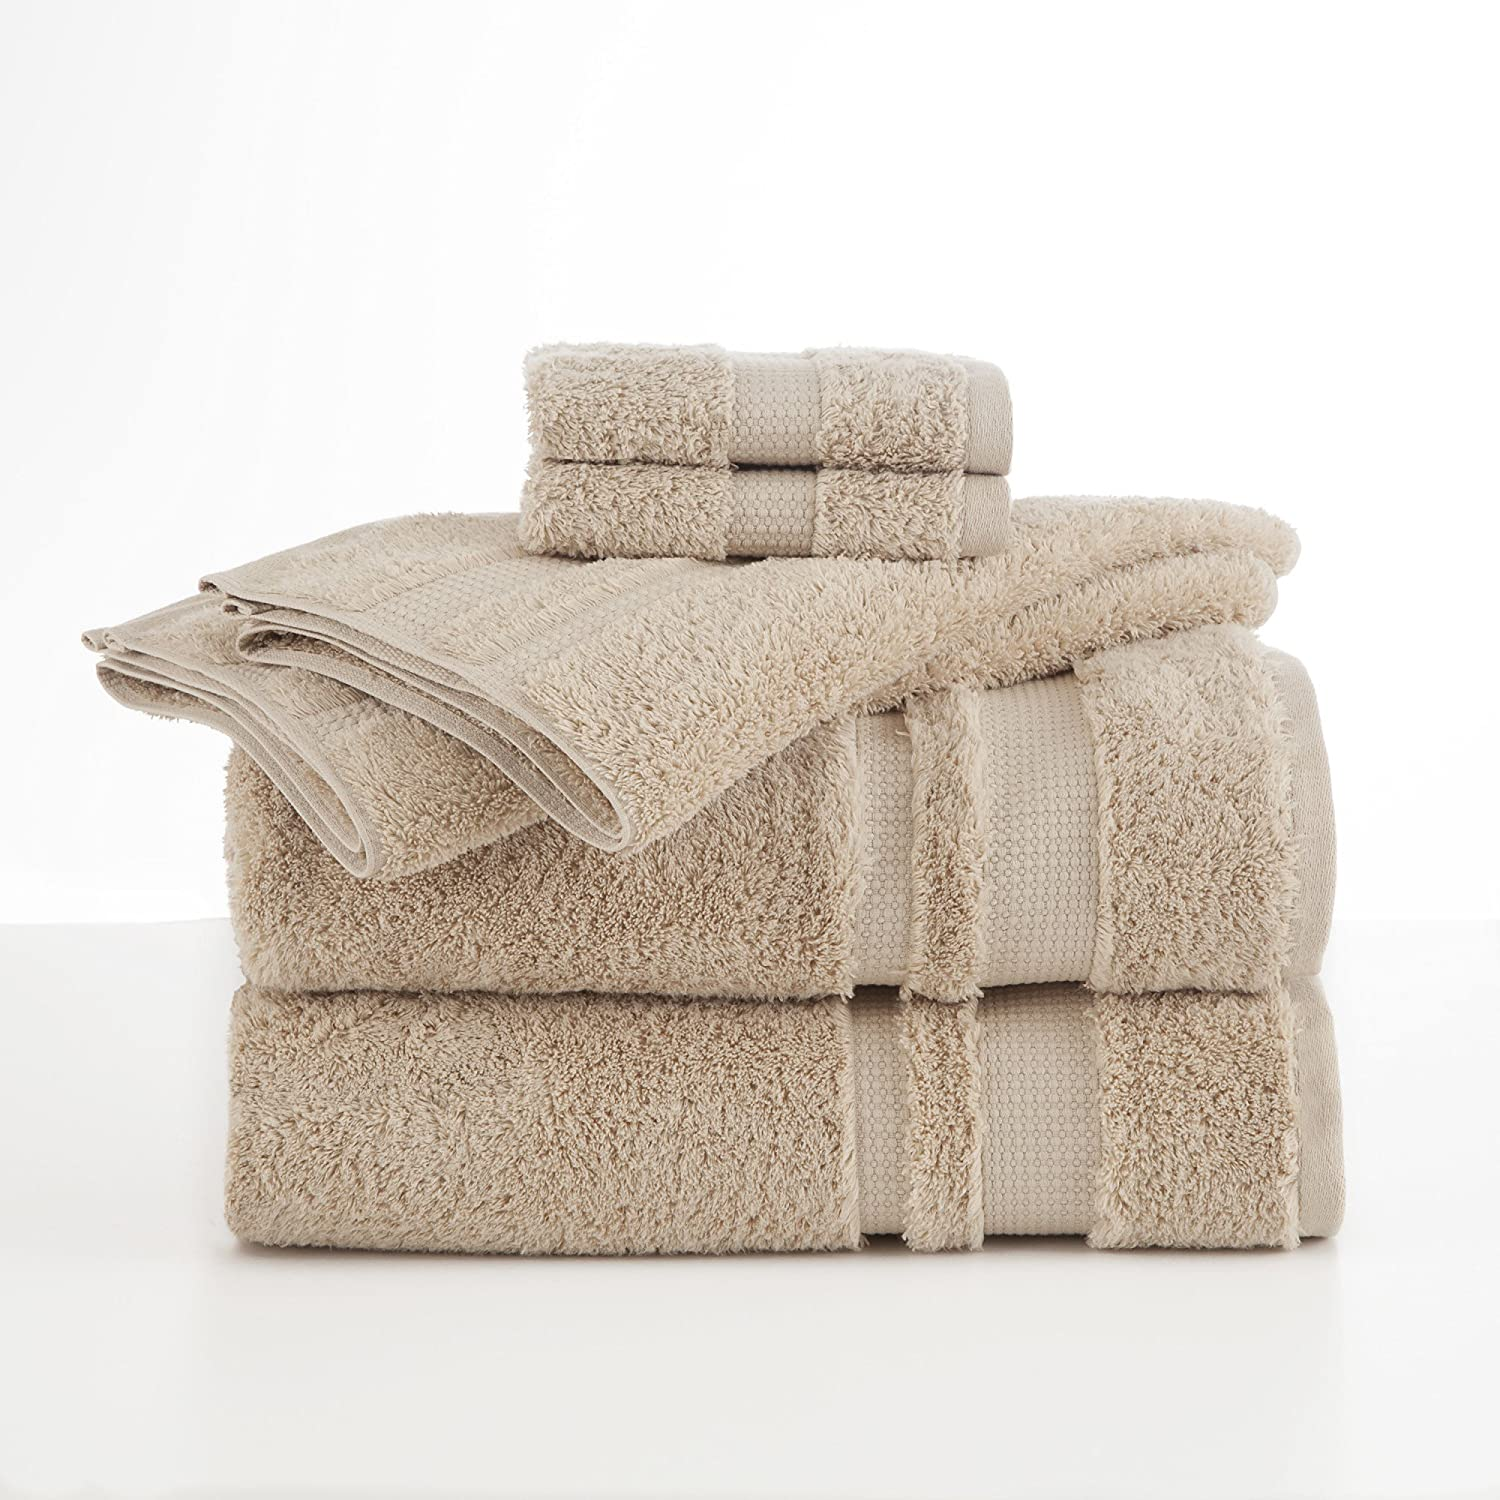 Martex 6 Piece Supima Sand Luxe Quality inspection Safety and trust Set Towel